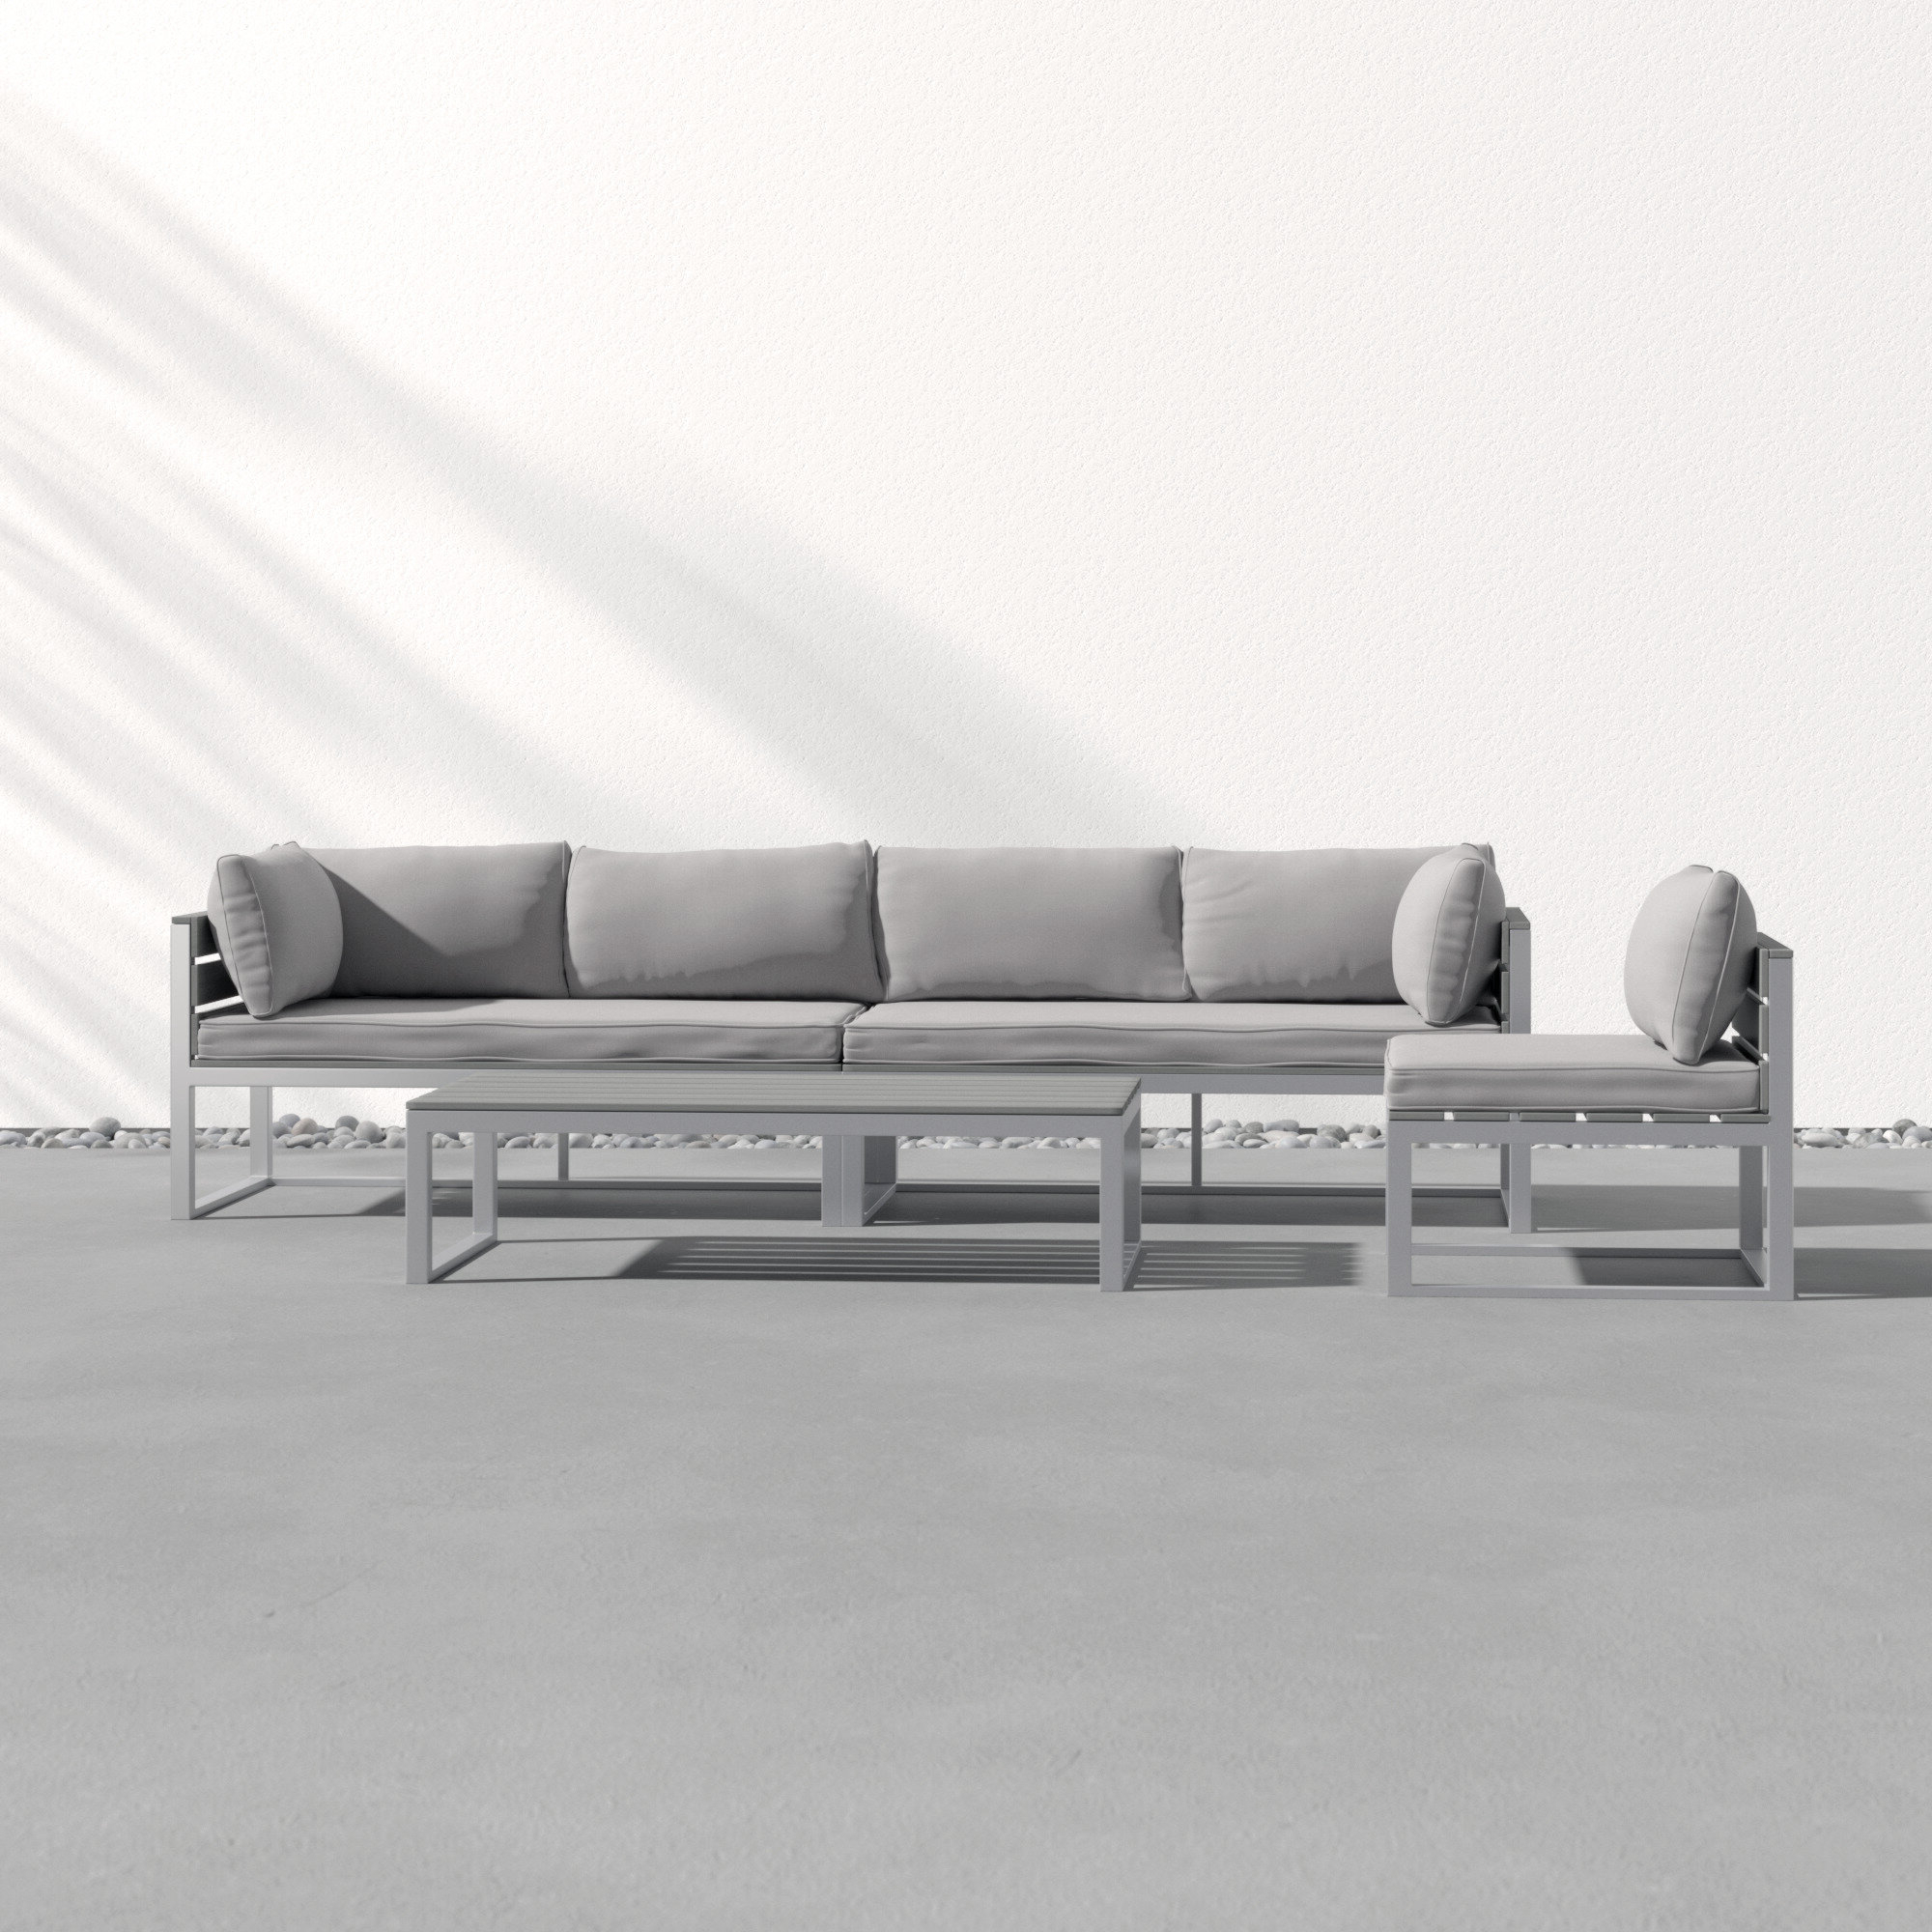 Popular Deandra Loveseats With Cushions In Castleford 4 Piece Sofa Seating Group With Cushions (View 17 of 25)